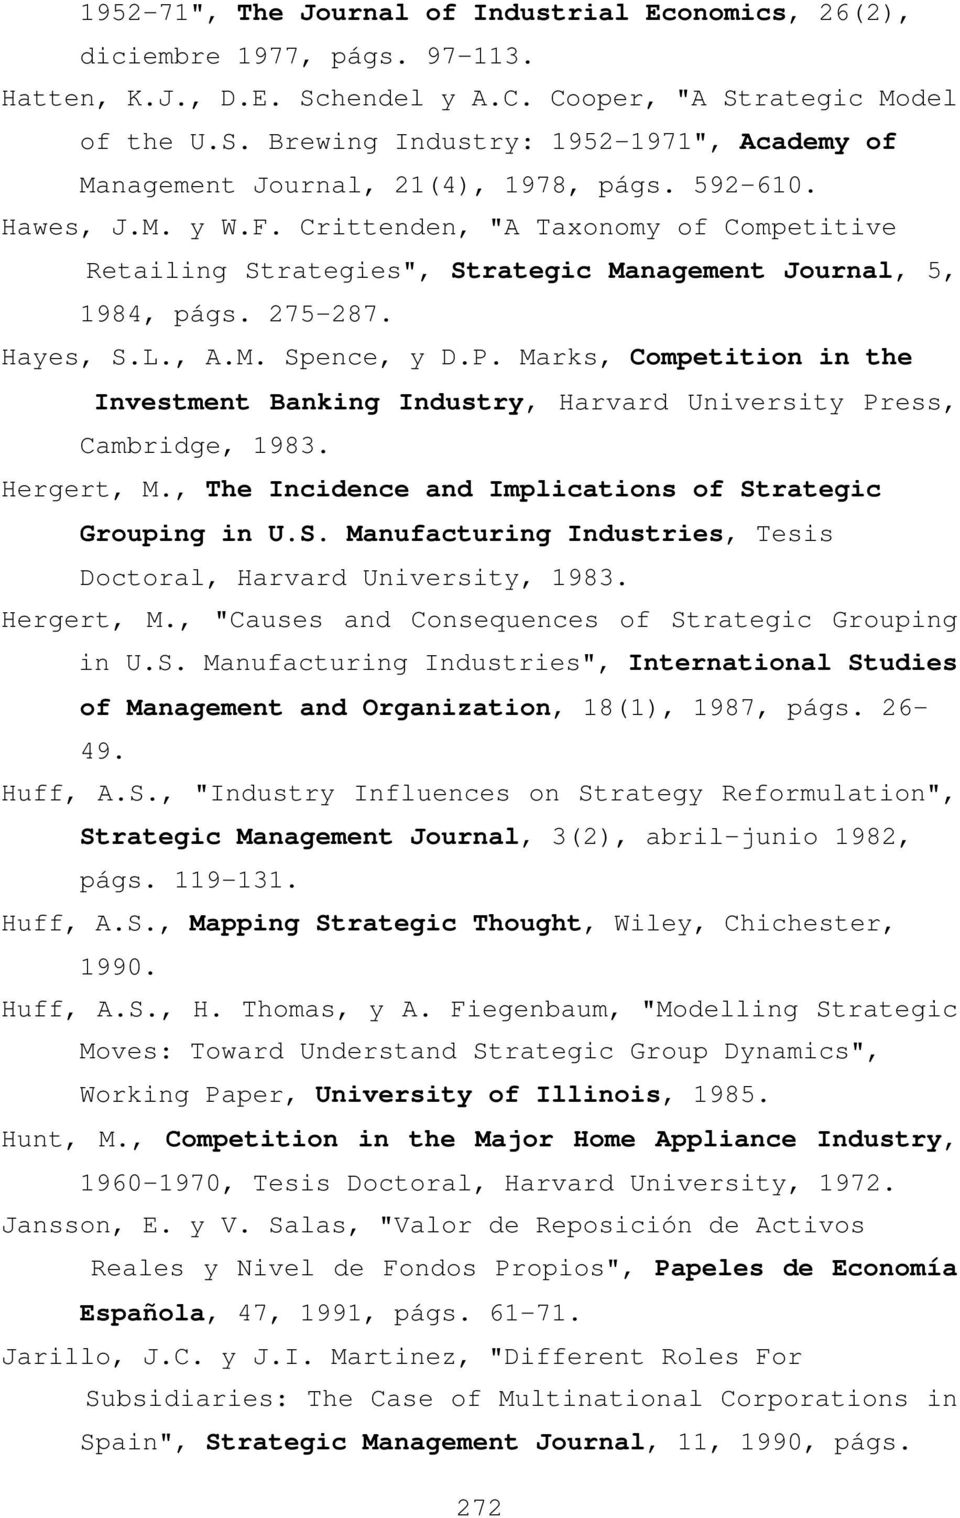 Marks, Competition in the Investment Banking Industry, Harvard University Press, Cambridge, 1983. Hergert, M., The Incidence and Implications of St